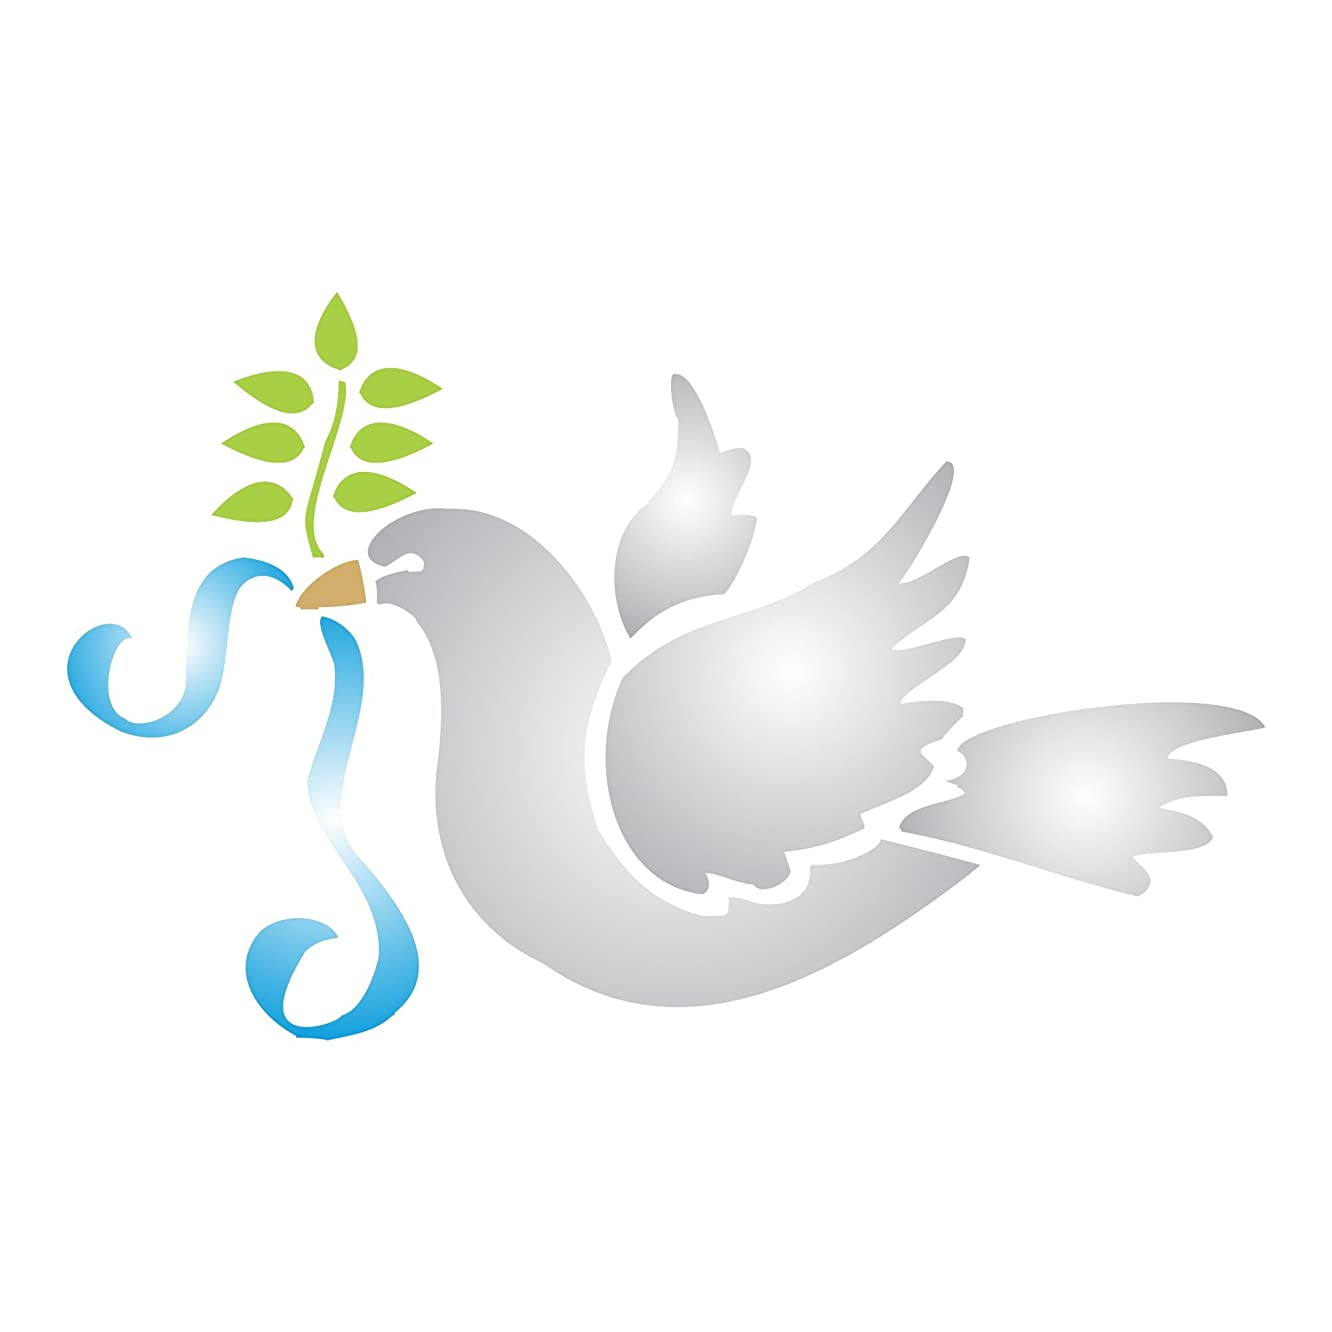 """Dove of Peace (size 5""""w x 3.25""""h) - Reusable Christmas Peace Dove Olive Branch Stencils for Painting - Use on Paper Projects Scrapbook Journal Walls Floors Fabric Furniture Glass Wood etc."""